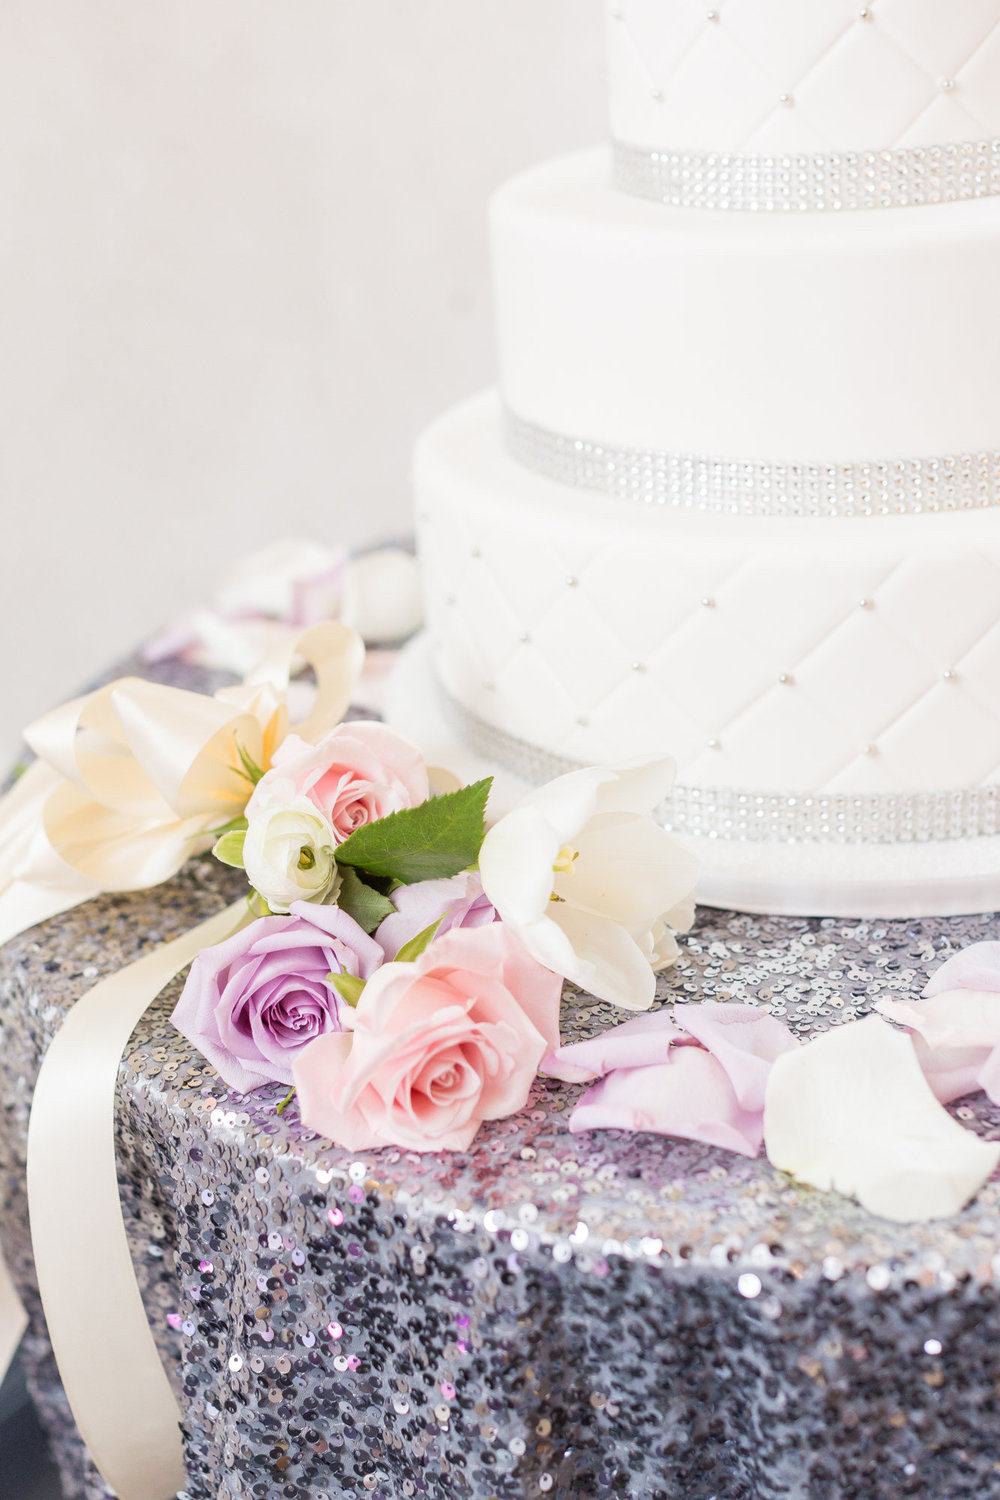 PIece of Cake - Wedding Cakes & Treats